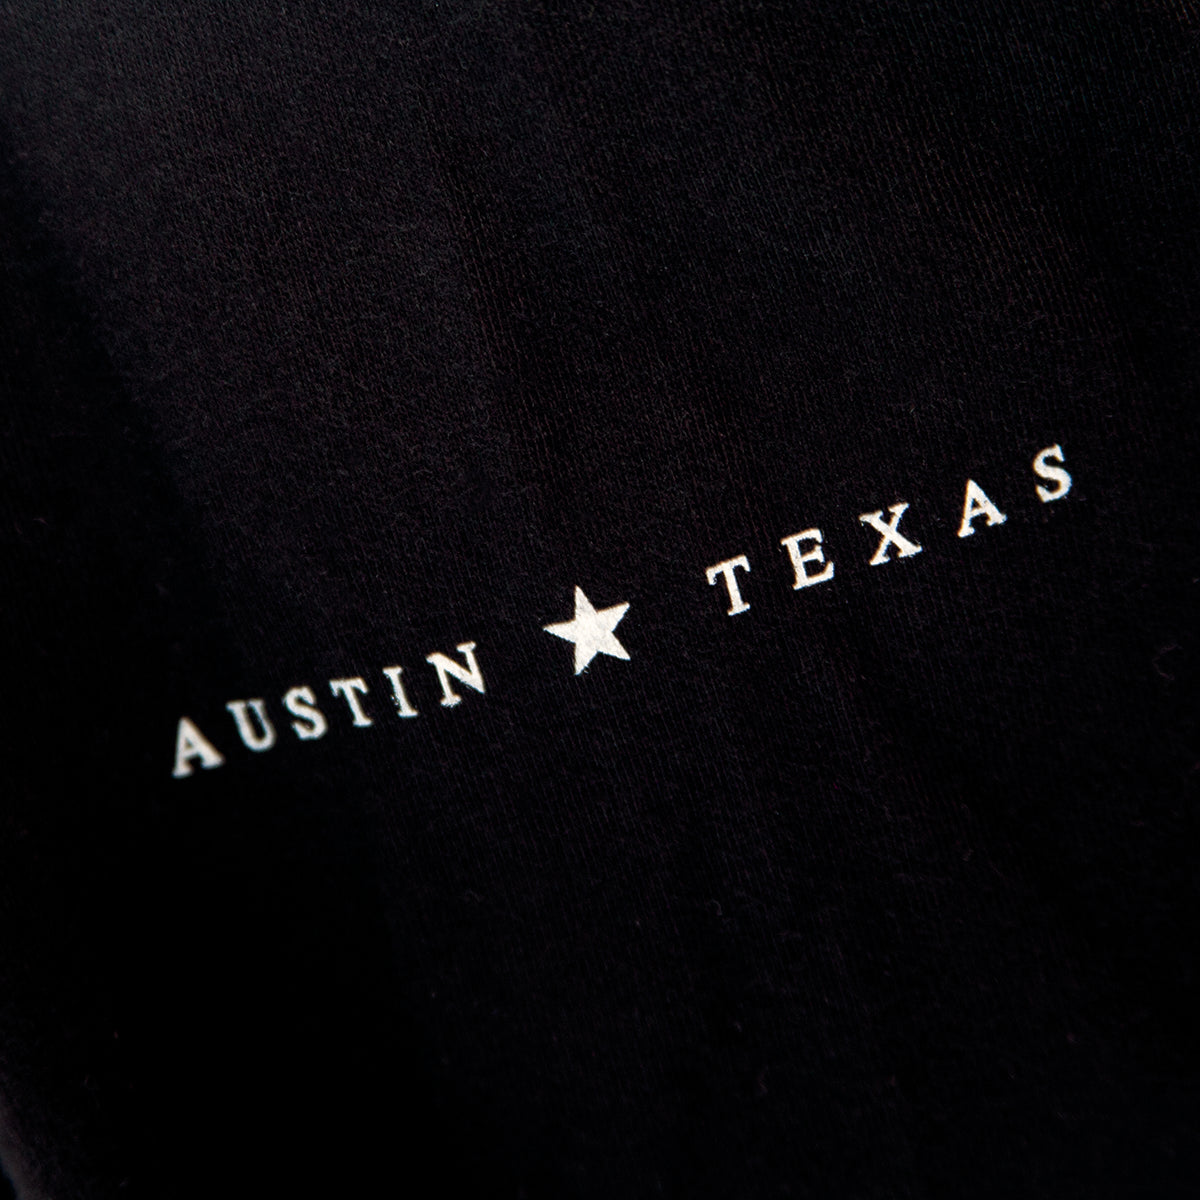 There's No Place Like Austin Long Sleeve Tee